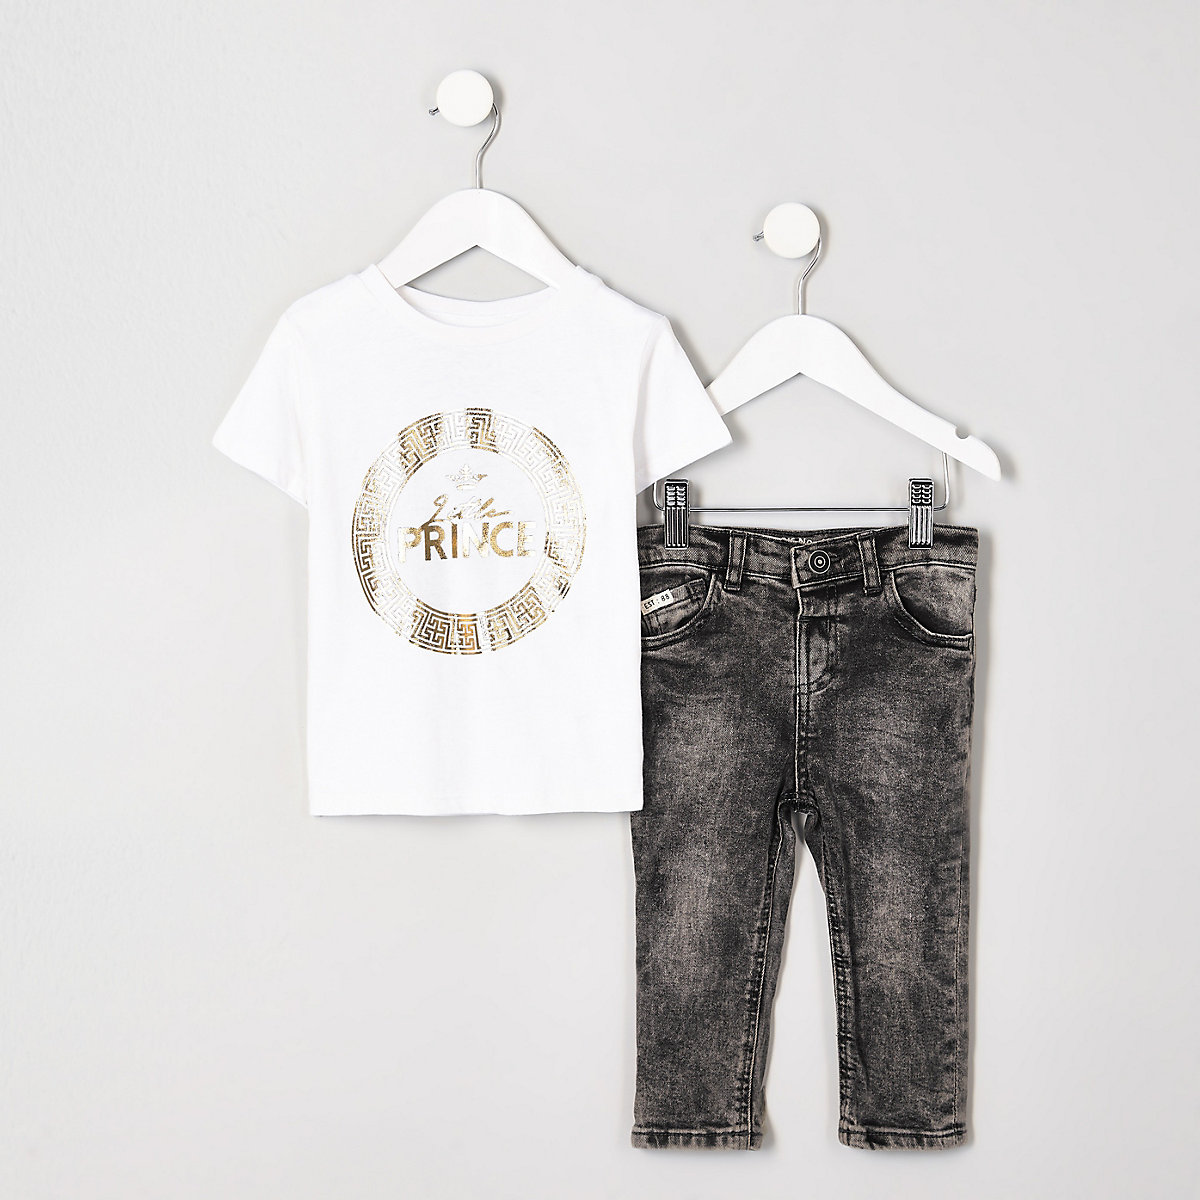 Mini boys 'little prince' foil T-shirt outfit